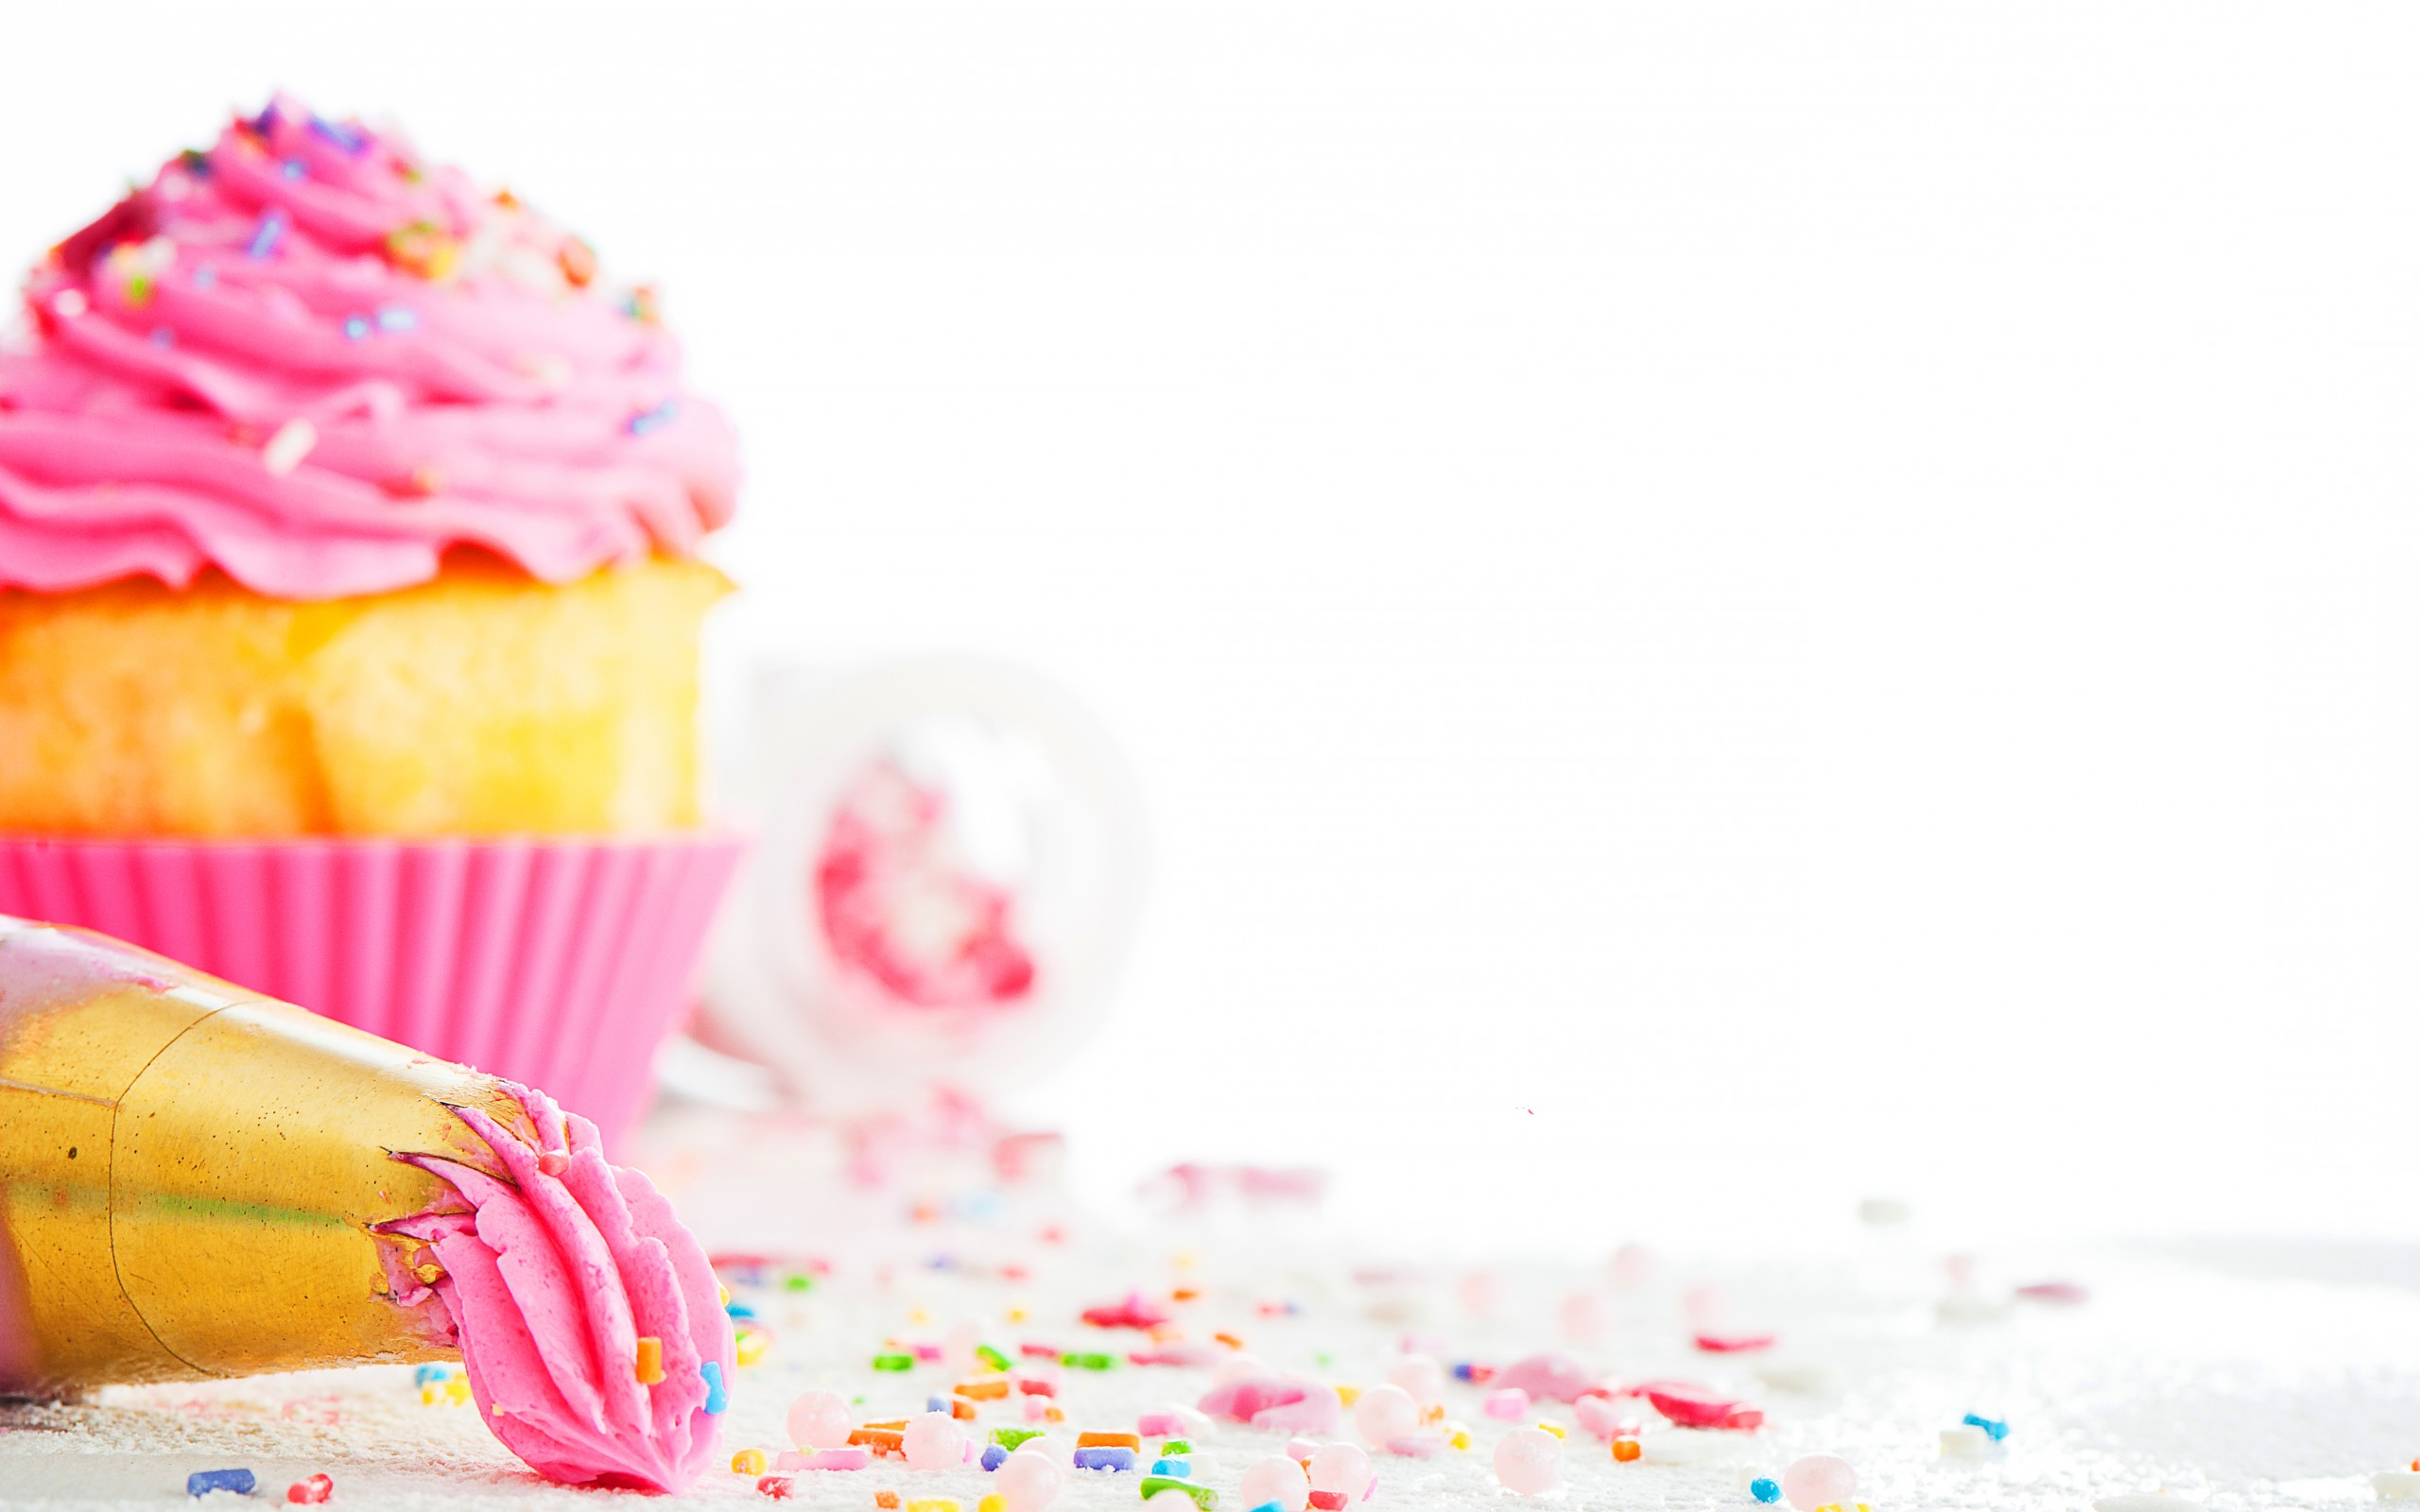 Views: 2772 Cupcake Wallpaper 20726